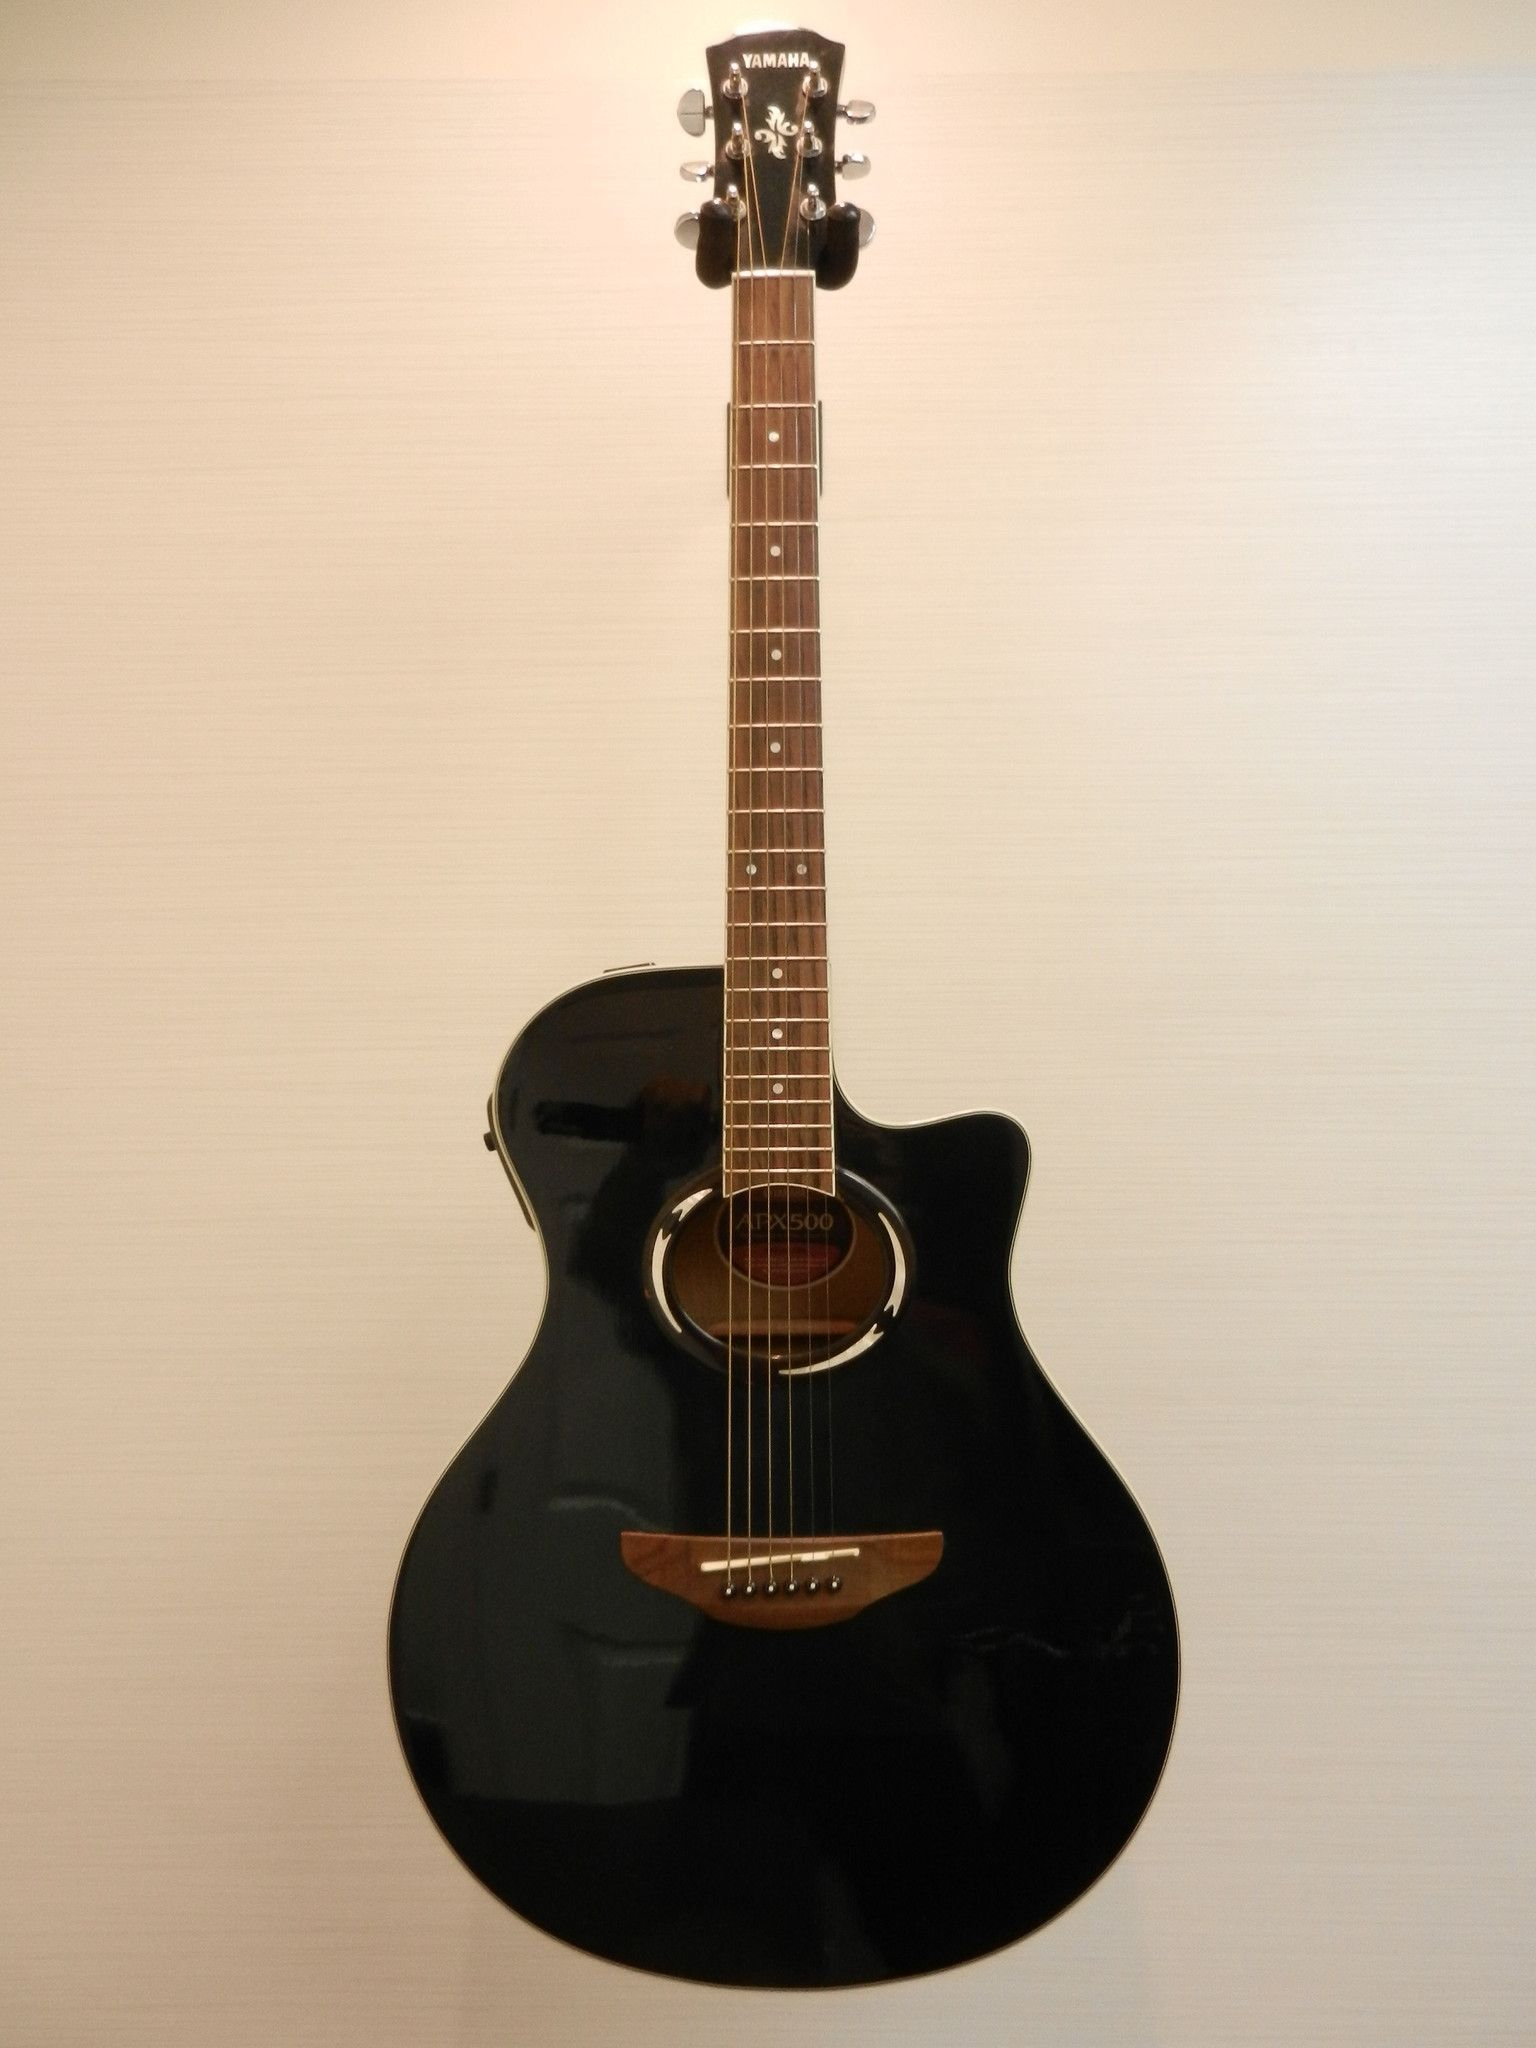 Yamaha Apx500 Acoustic Electric Guitar Black With Gig Bag Acoustic Electric Guitar Guitar Guitars For Sale